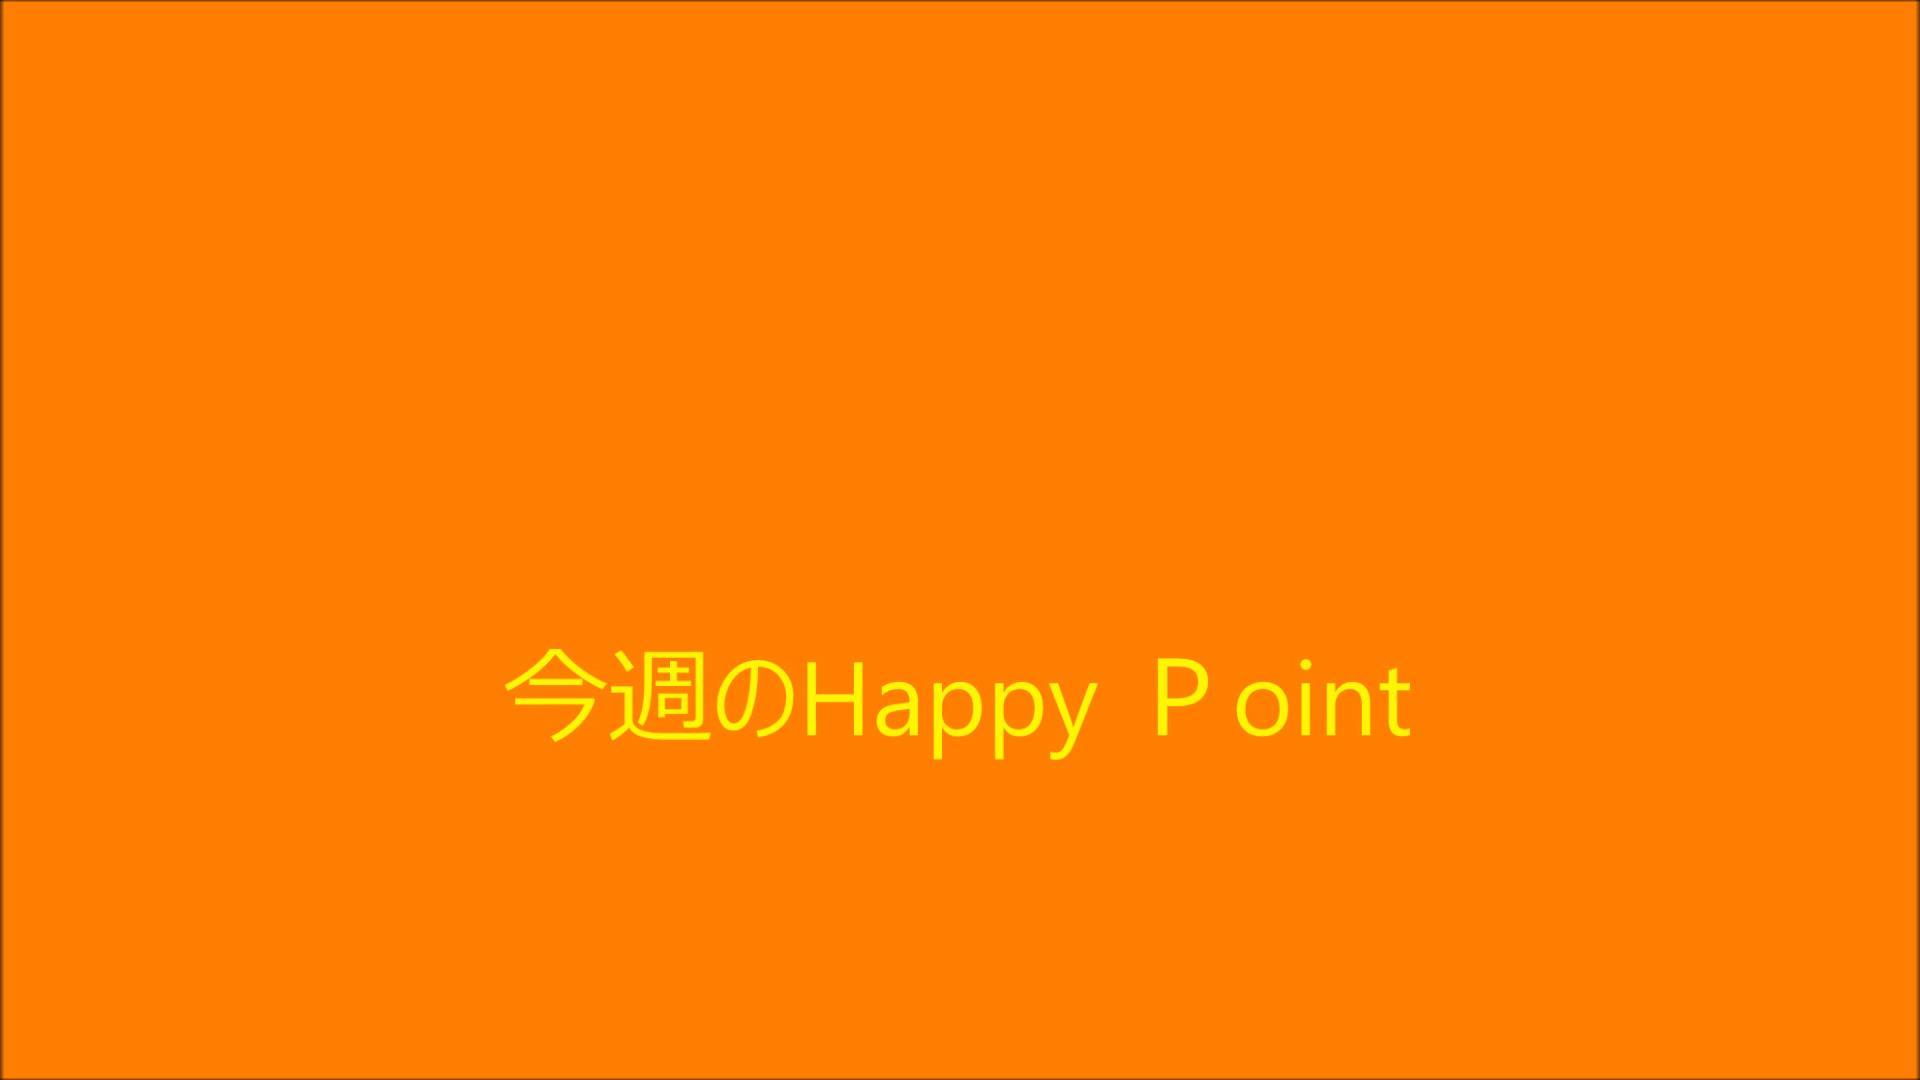 1月17日のHappy Point_a0168274_14595109.jpg